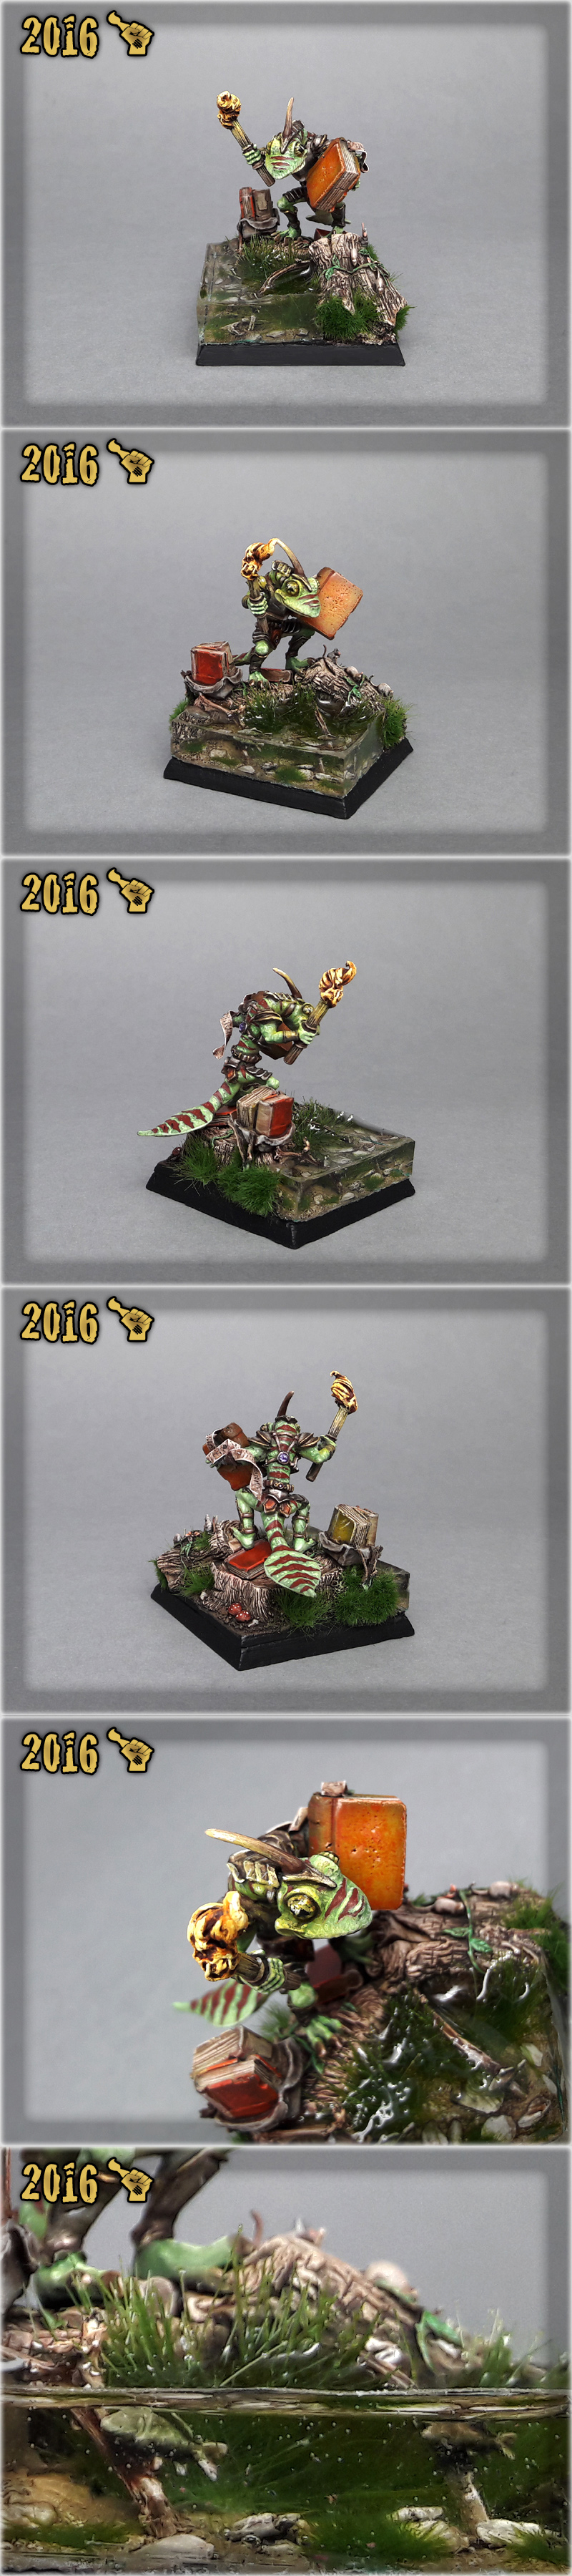 Scar_hand Painting - Gecko Mage by Nazroth